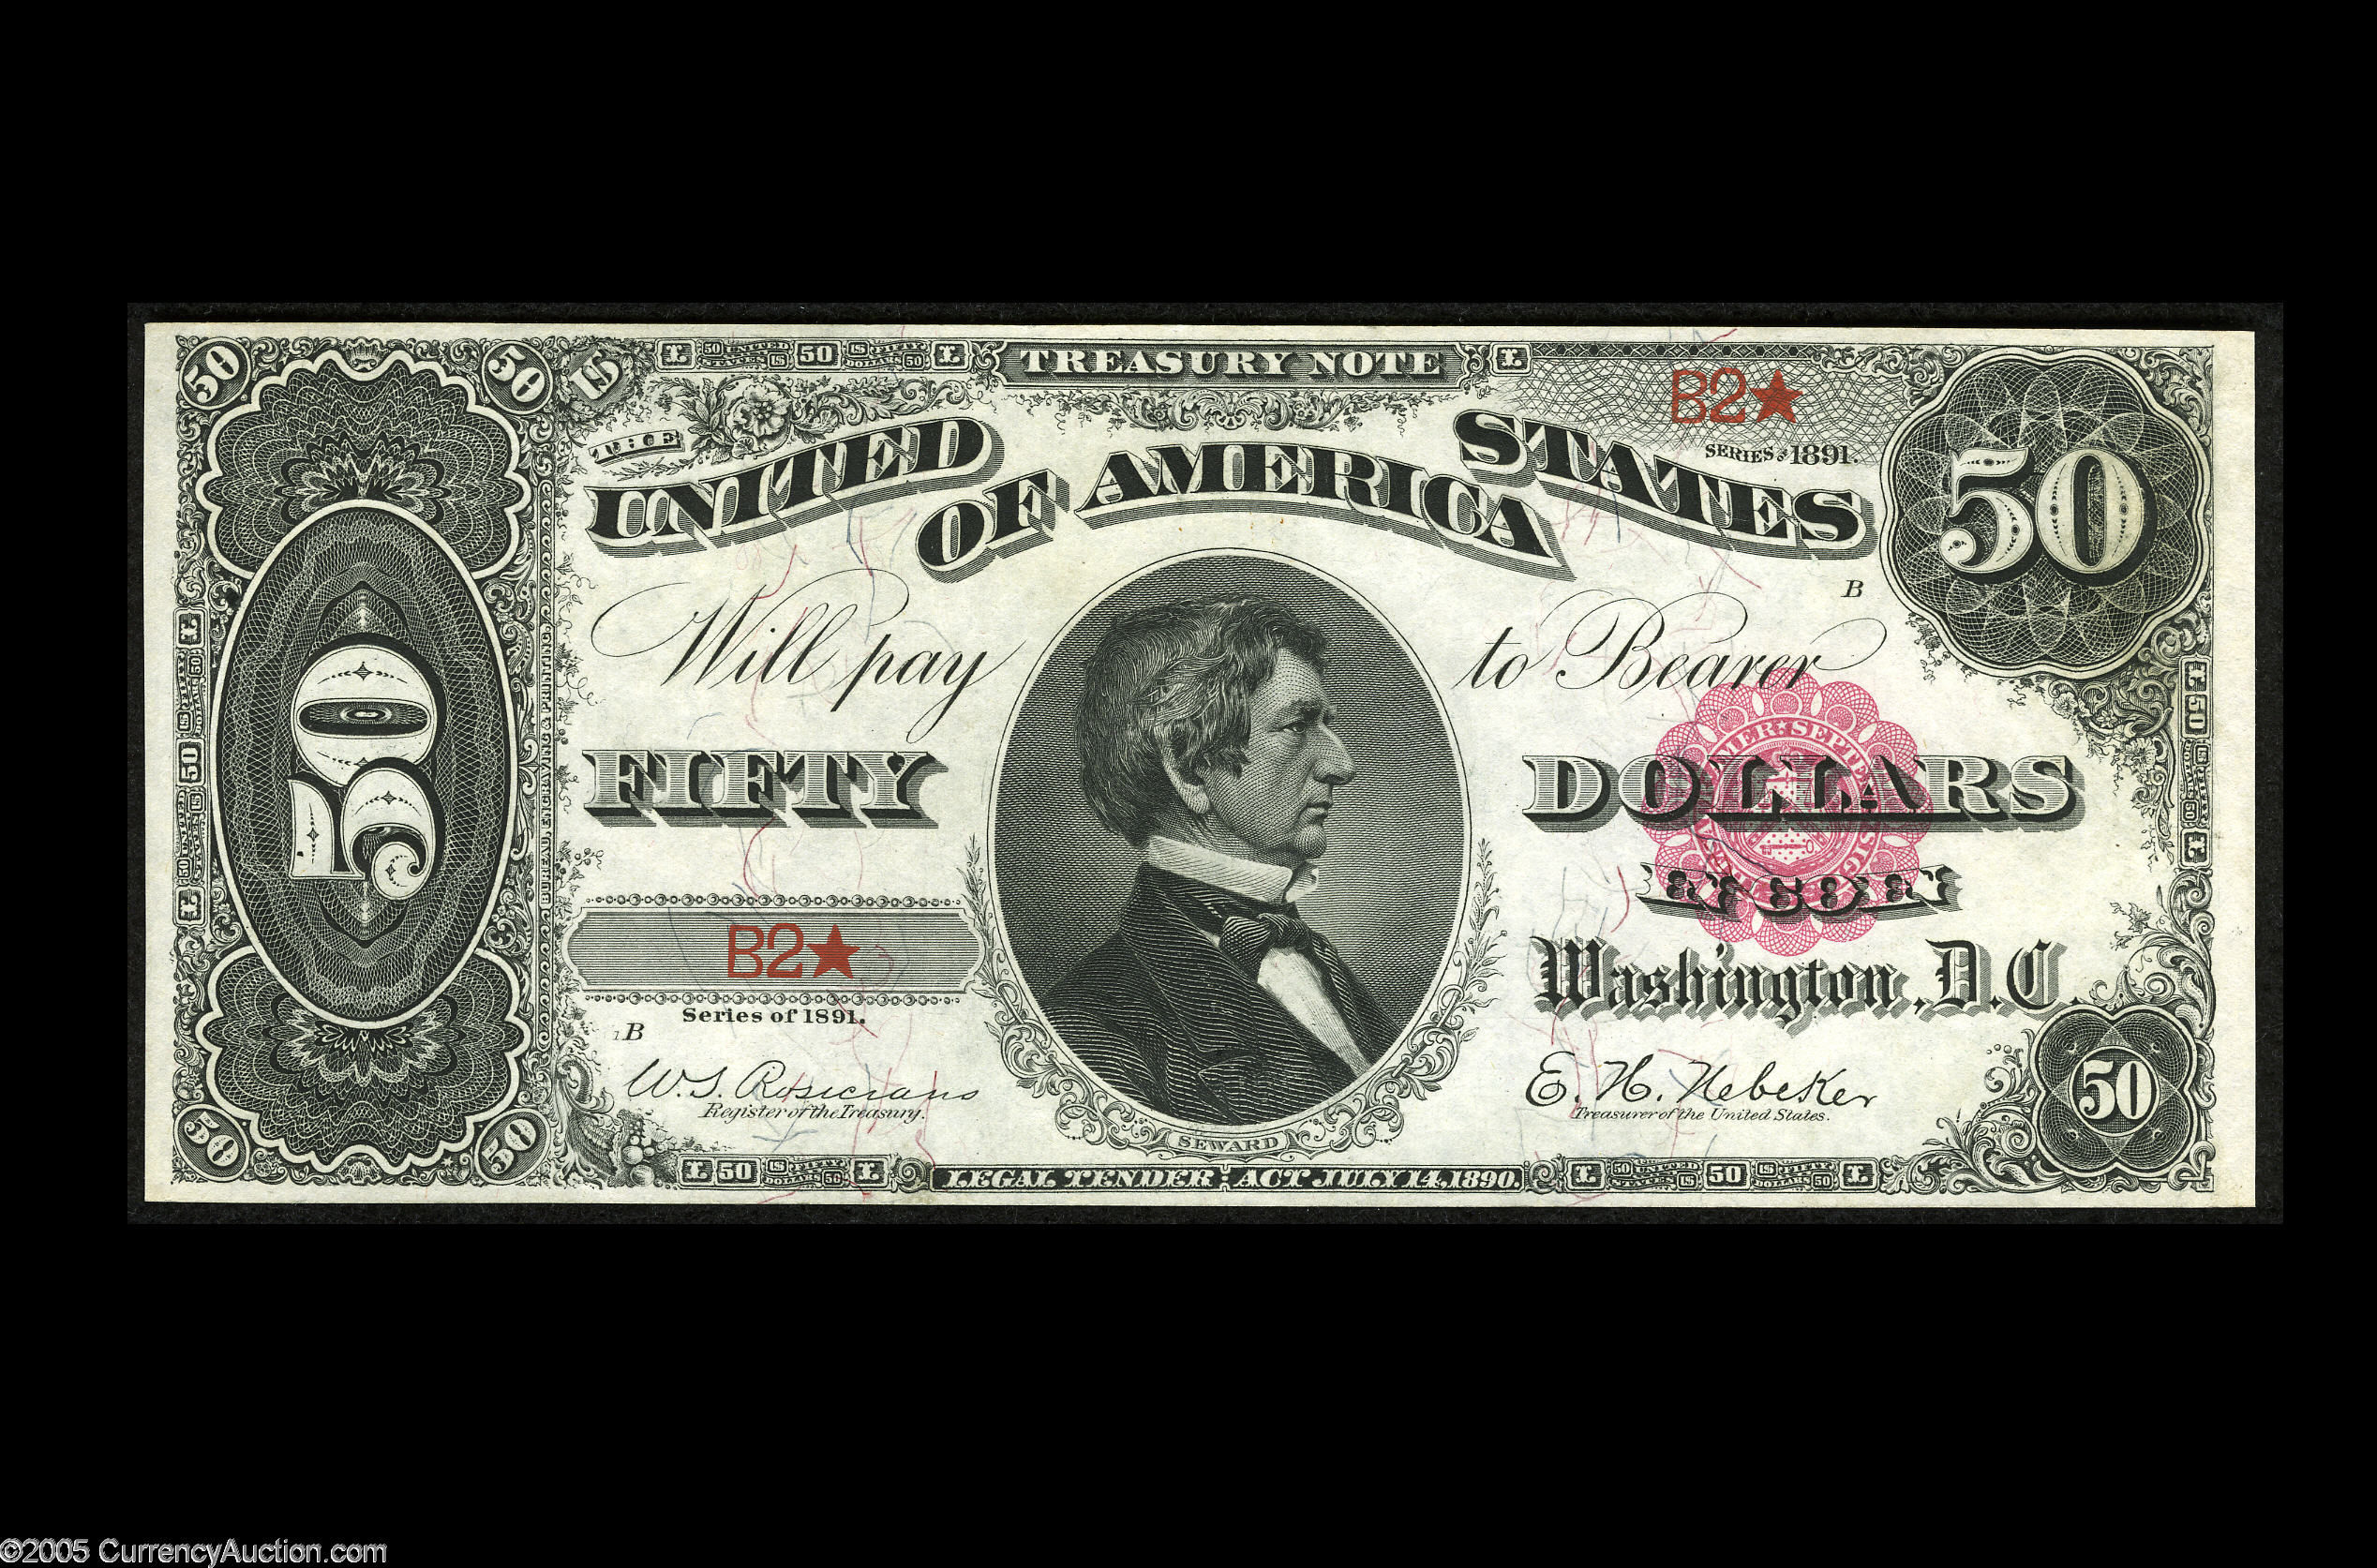 Fr. 376 1890 $50 Treasury or Coin Note - Choice New - 2005 CAA St. Louis Heritage Auctions